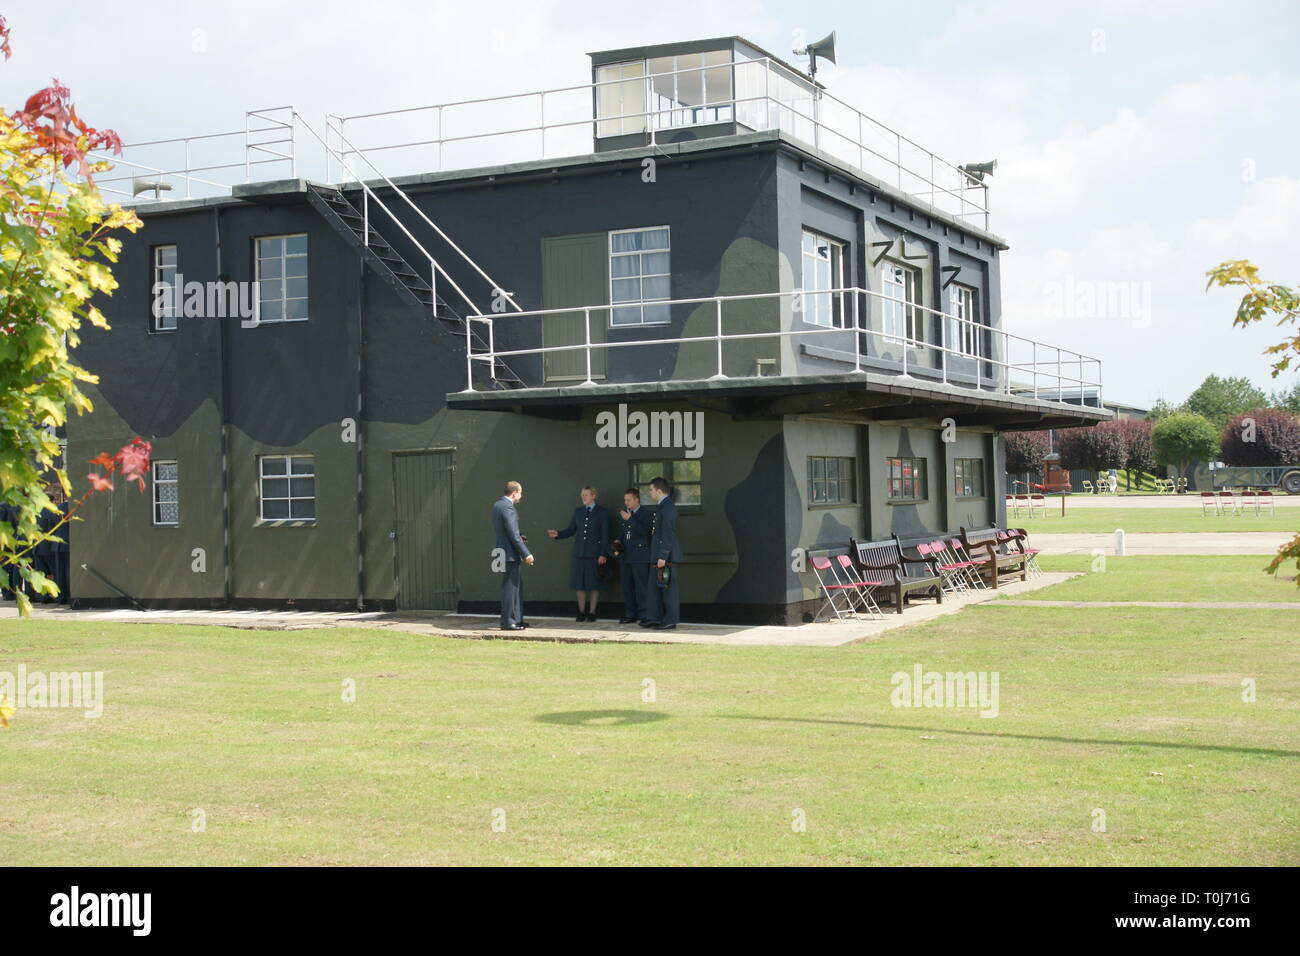 world war two airfield control tower - Stock Image